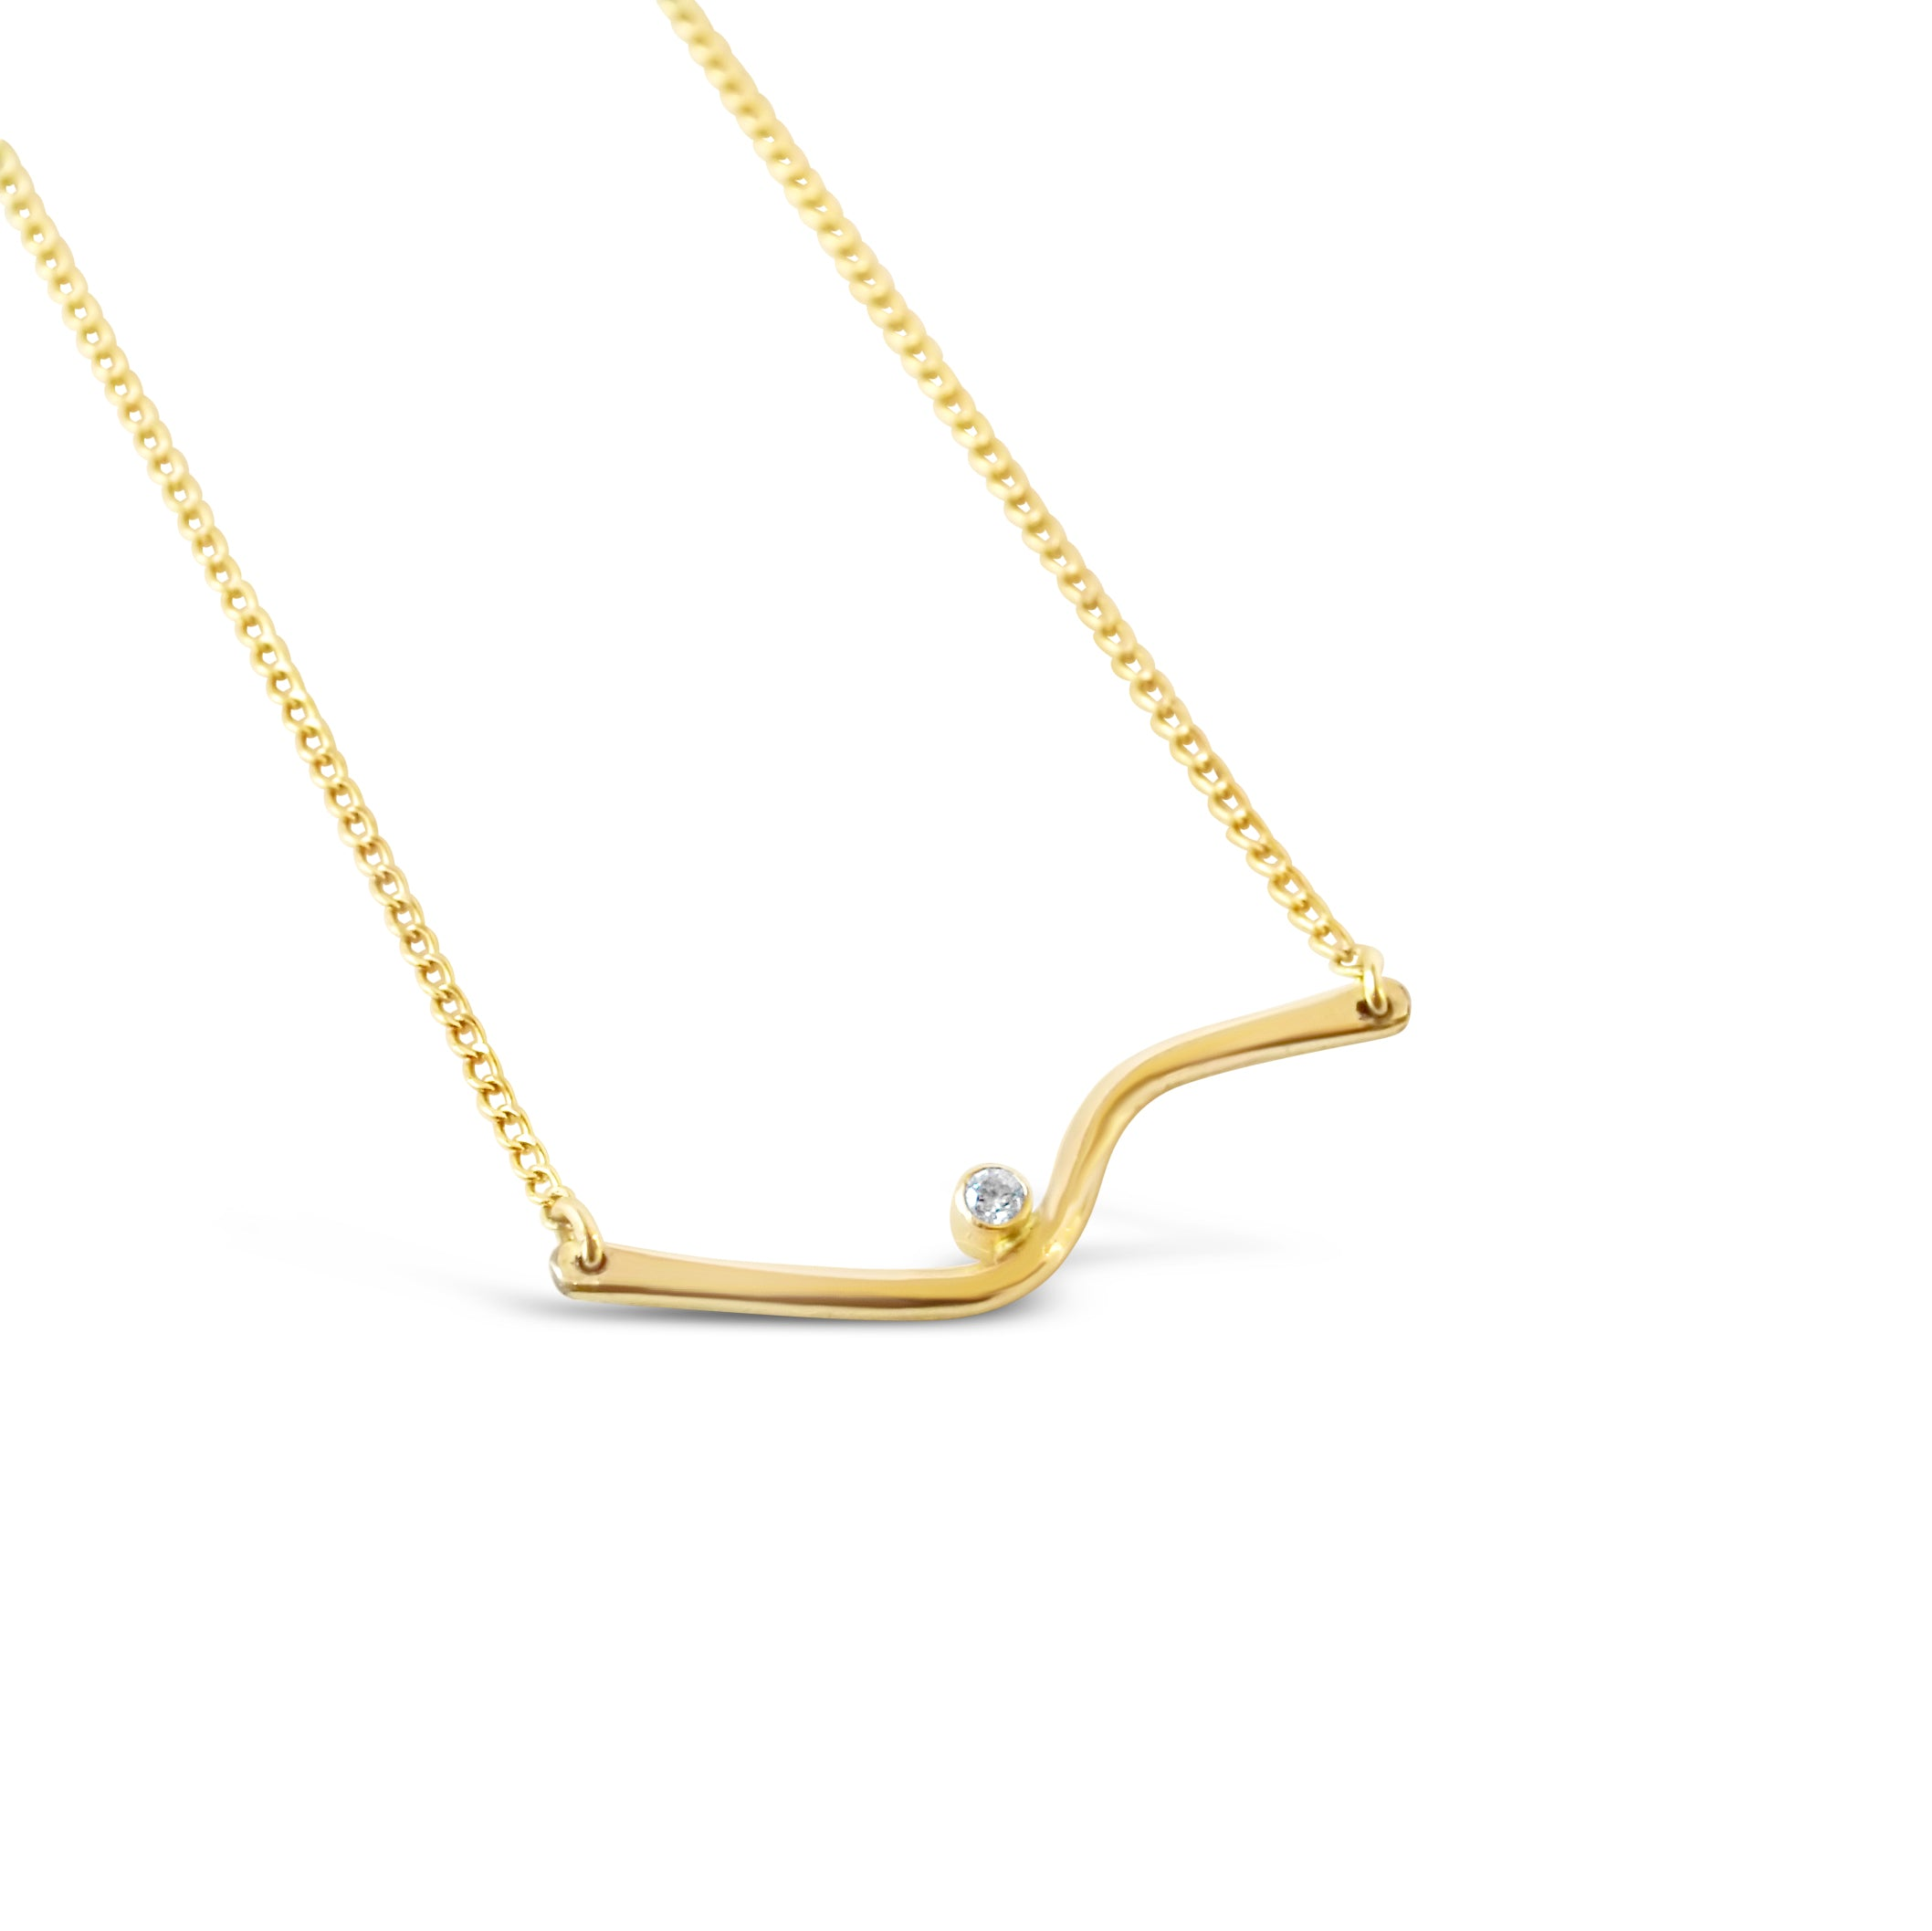 Easy Rider Necklace- Gold or Silver